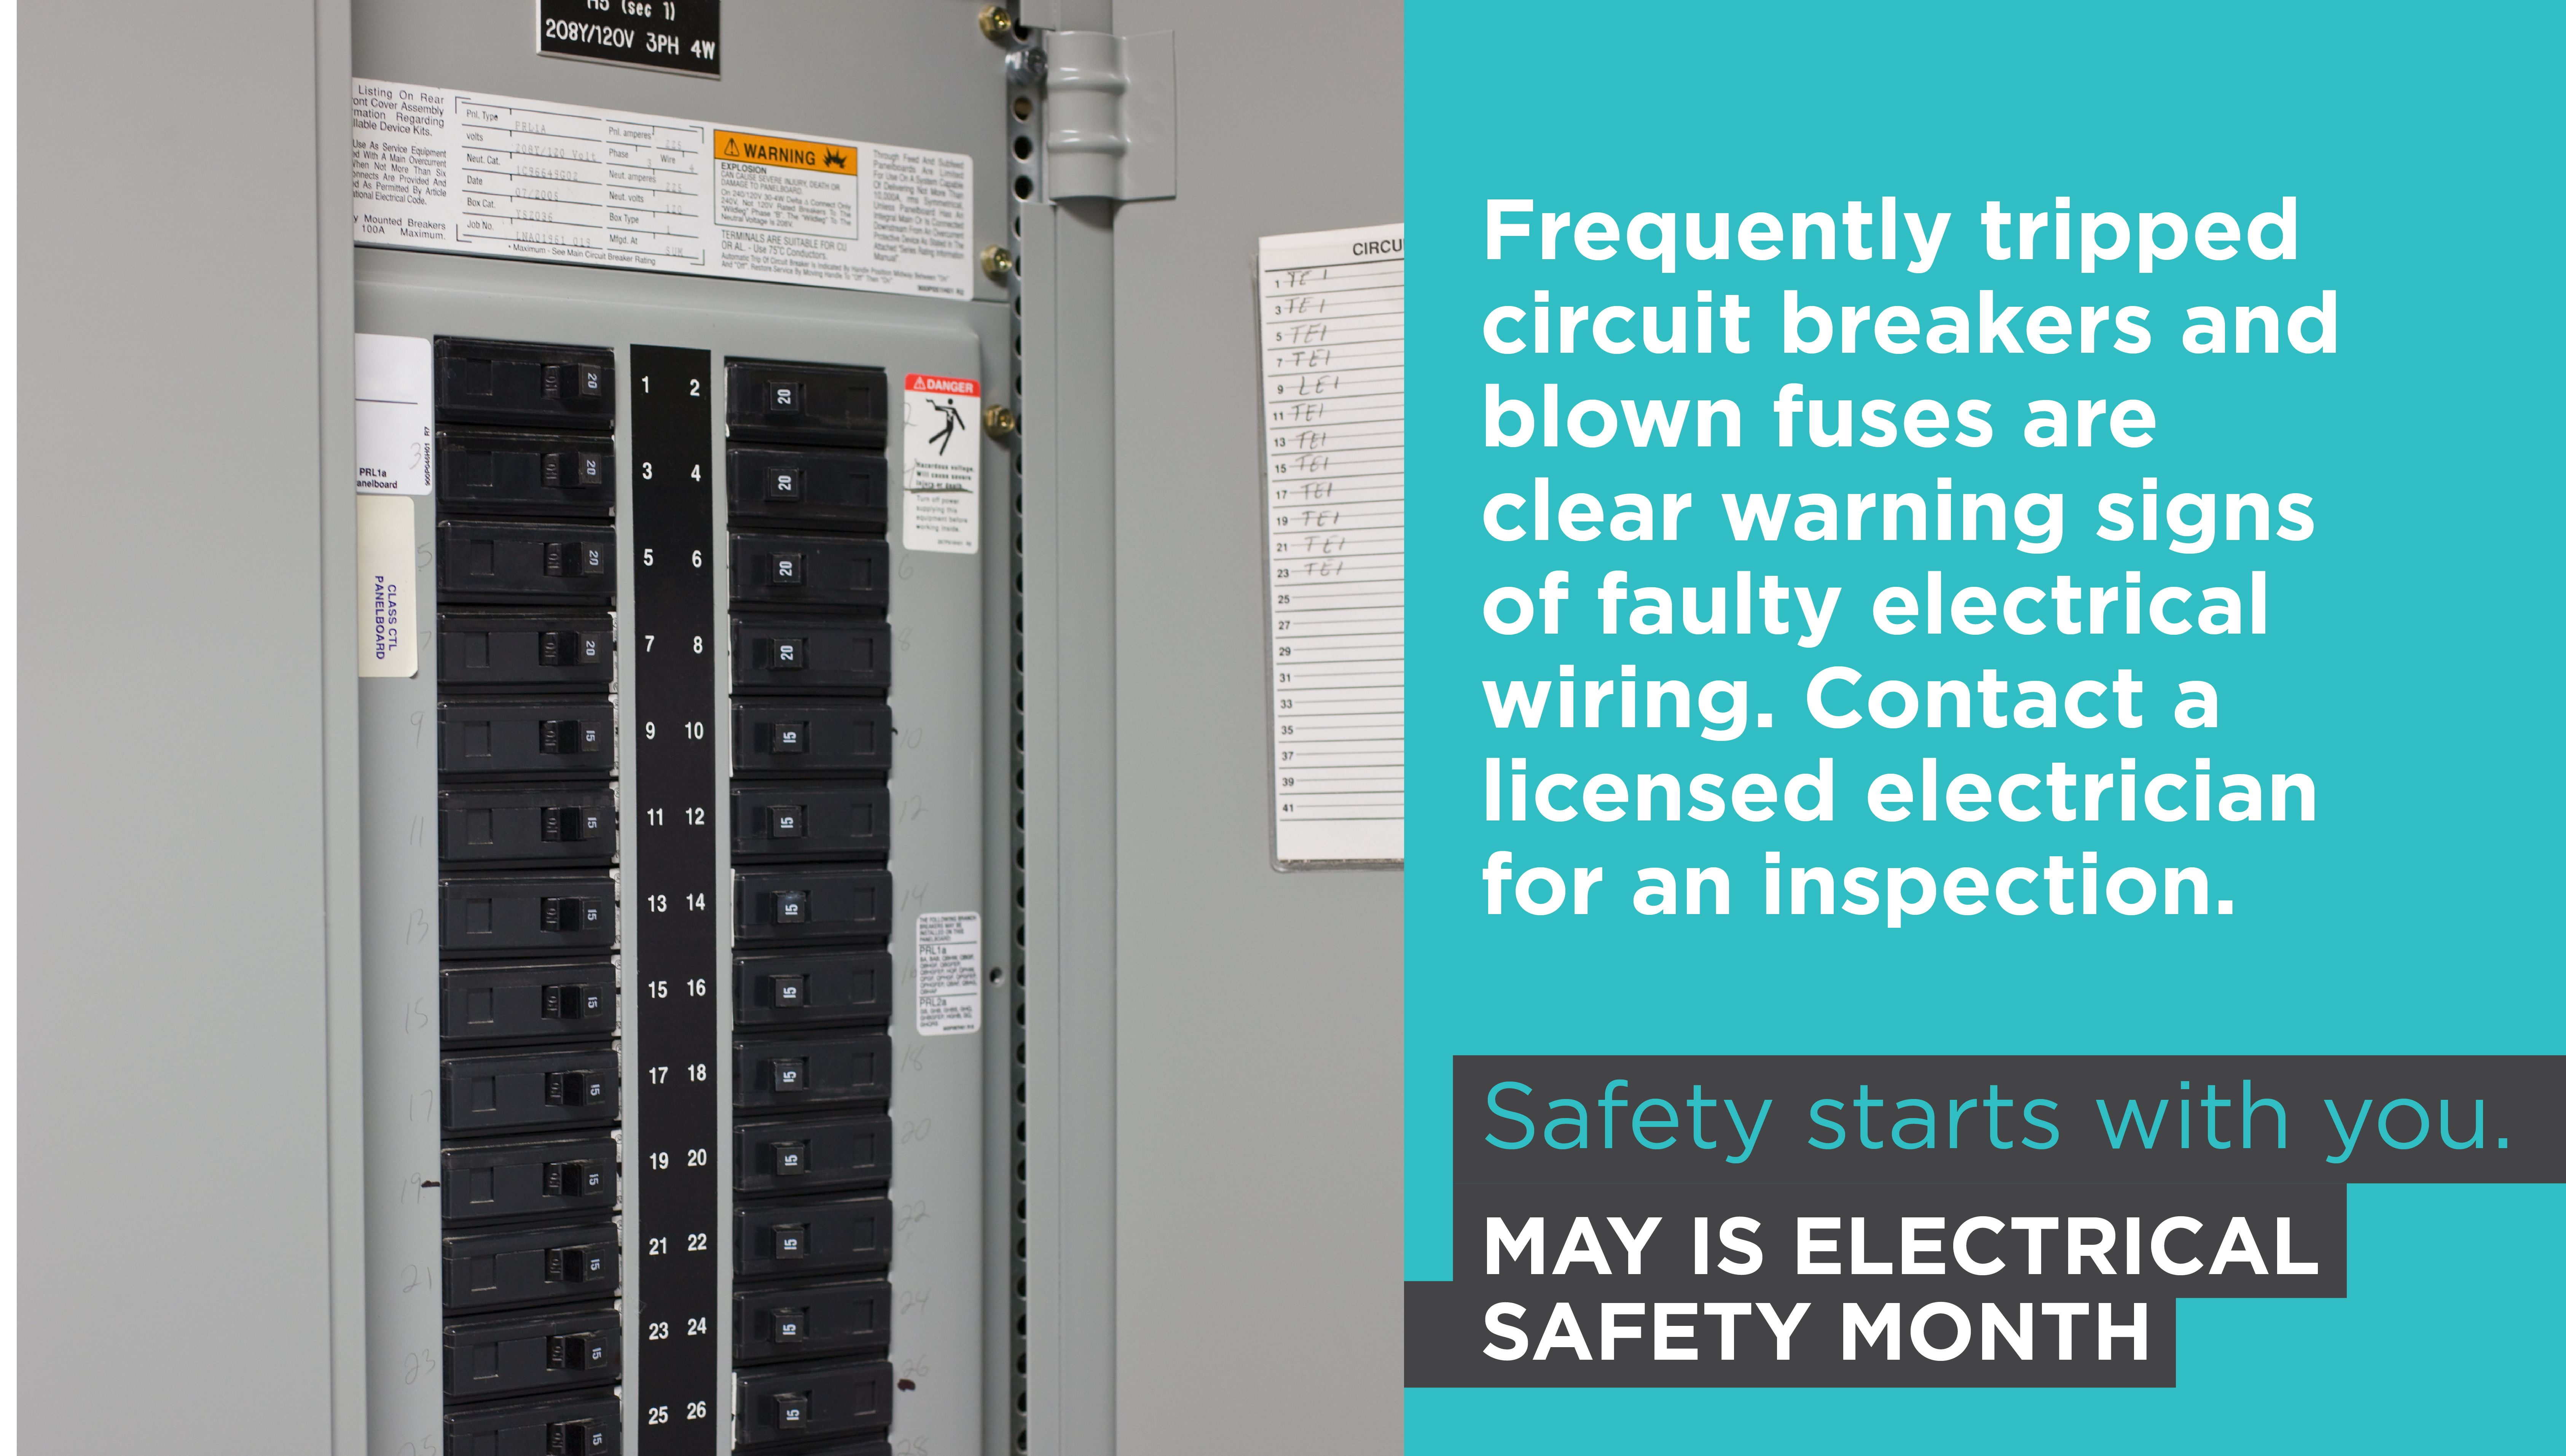 Signs Of Faulty Wiring Electrical Safety Locker Storage Electrician